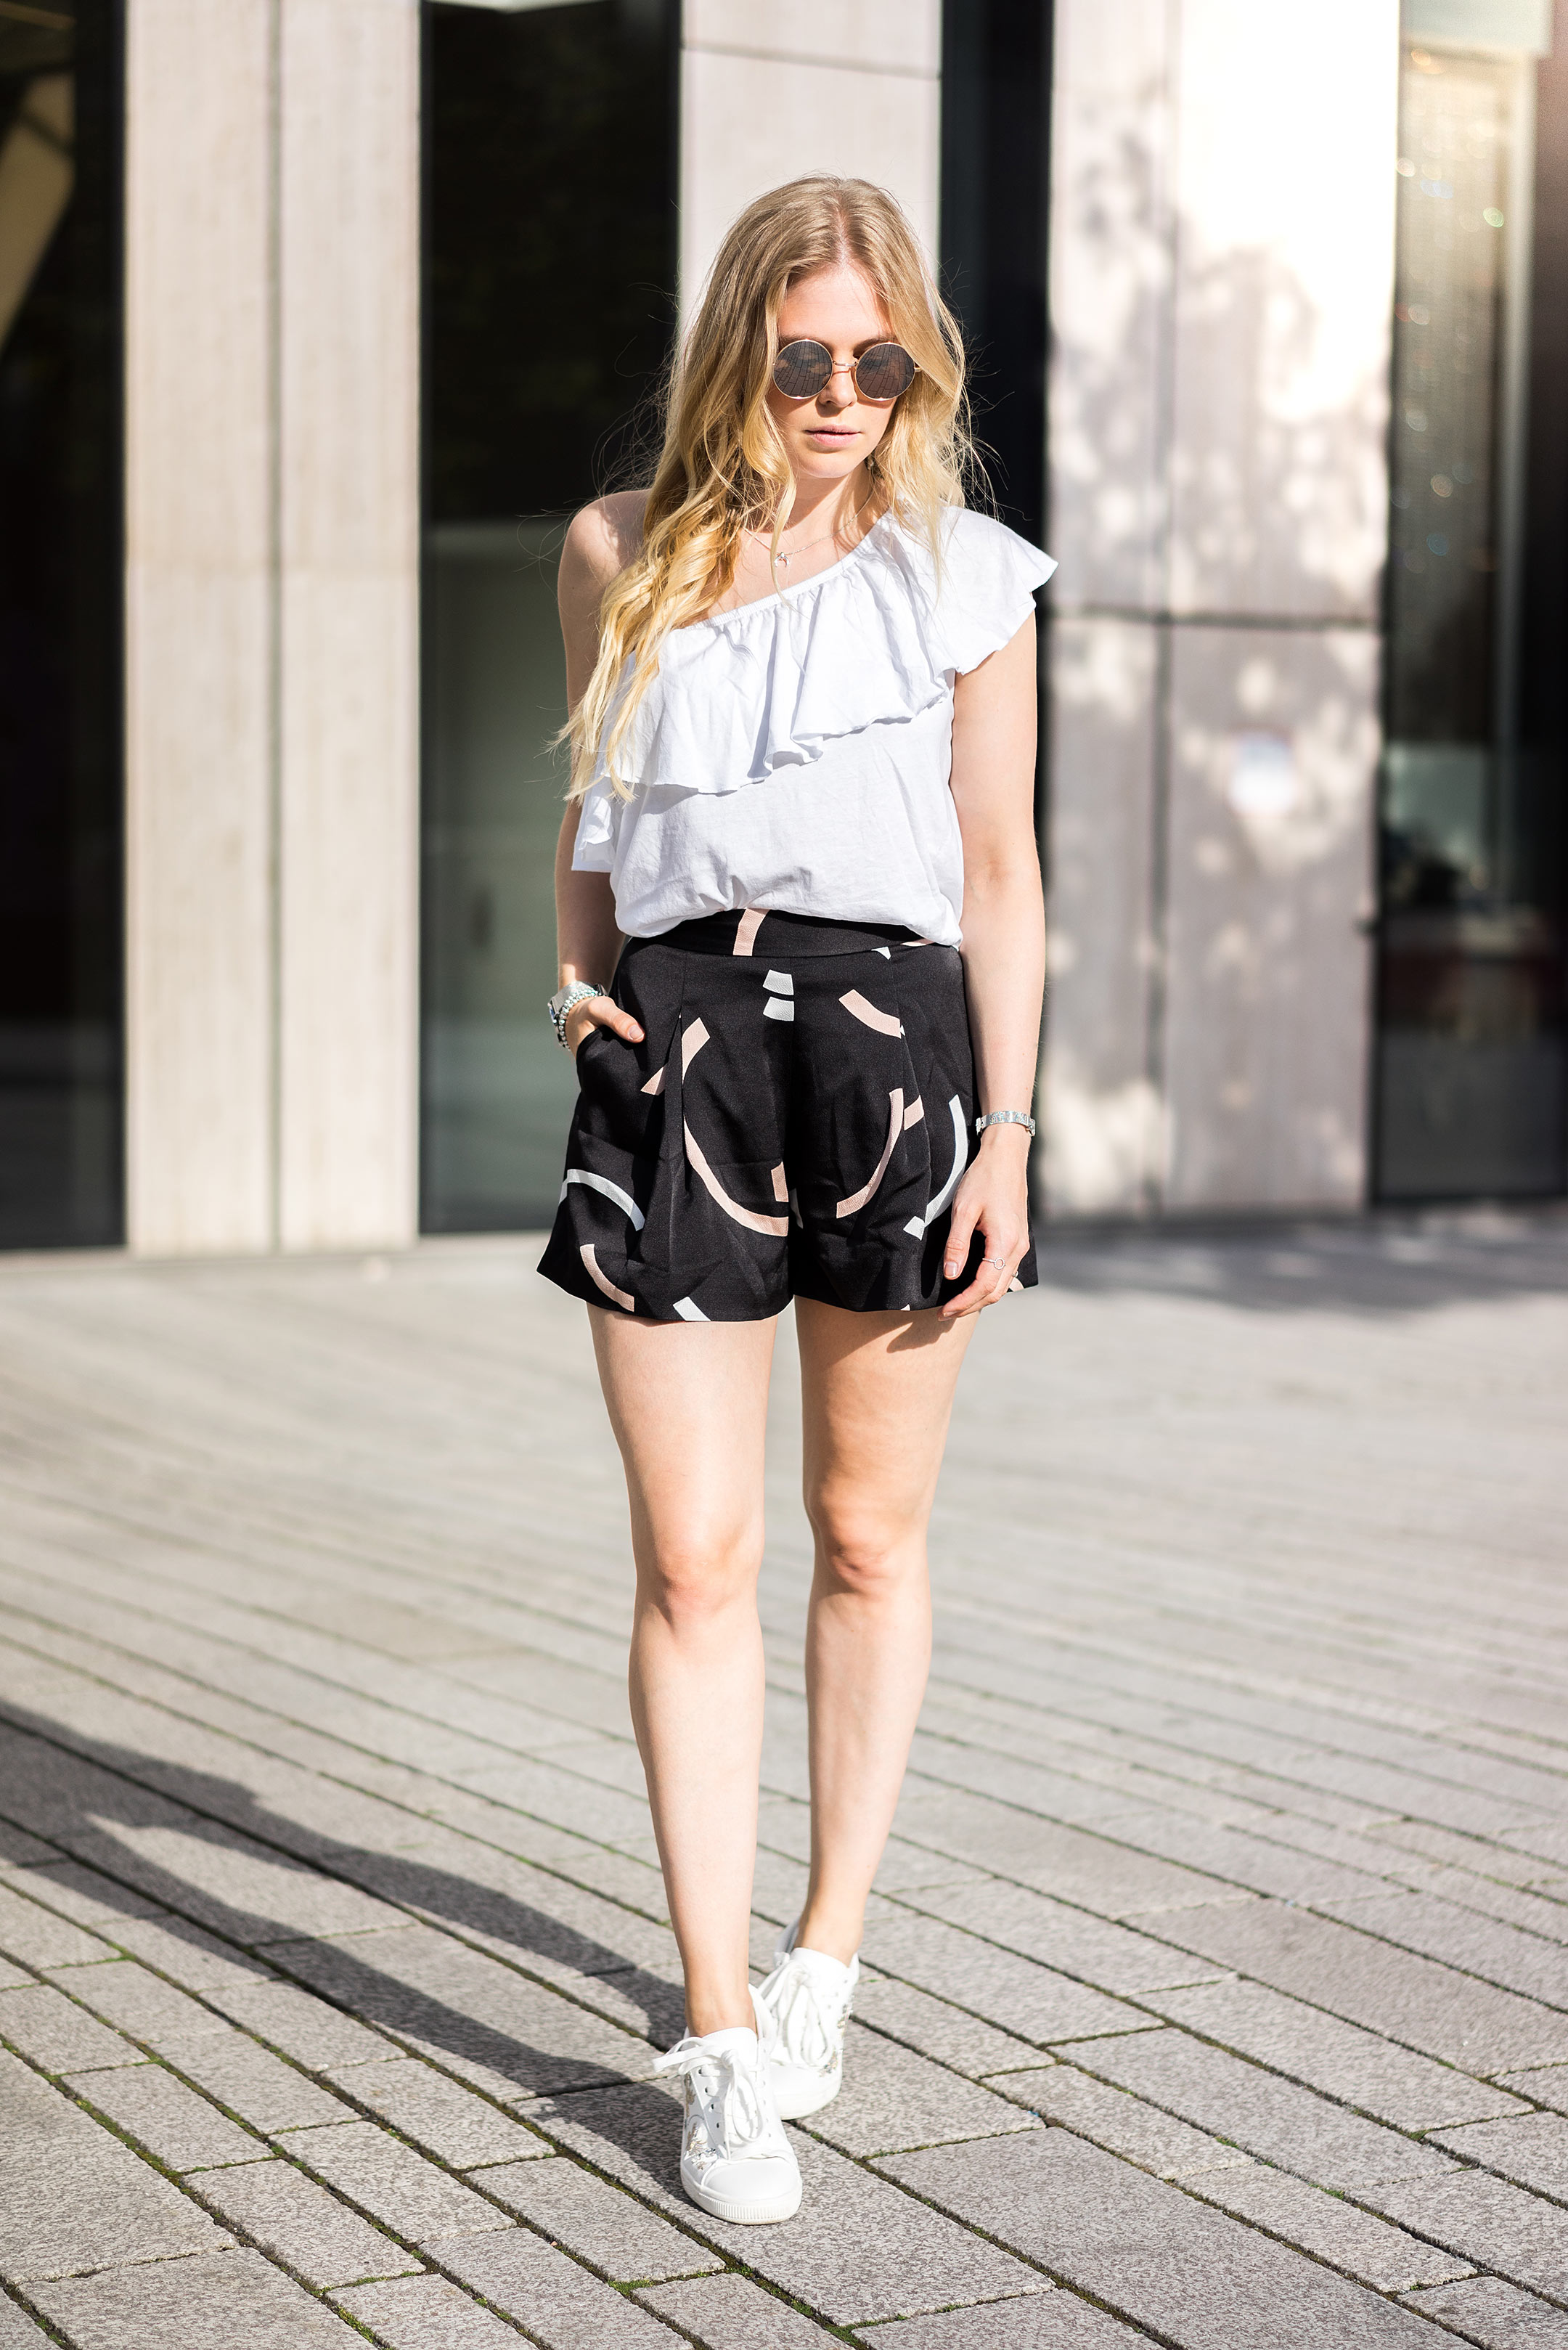 Sunnyinga Blogger Düsseldorf Streetstyle Sommer Outfit Shorts Sneakers